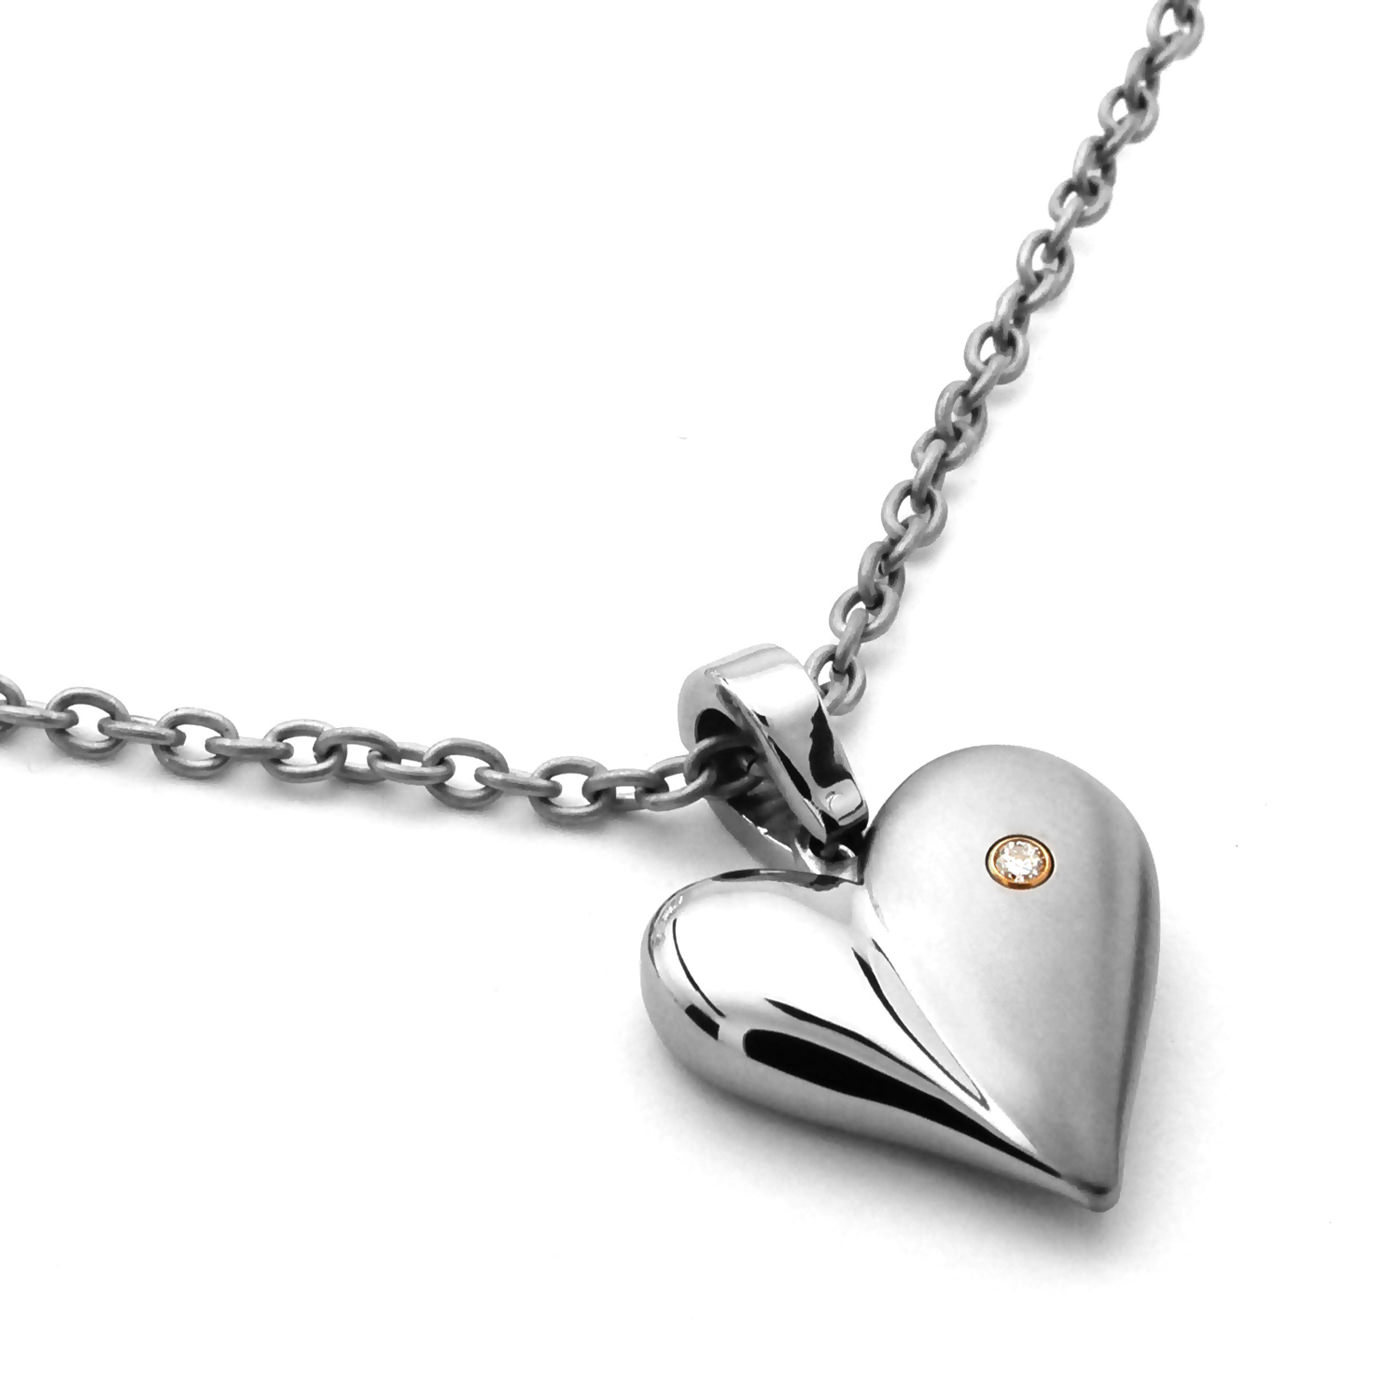 ashes pendant cremation heart p titanium picture s pendants necklace of ms funnel